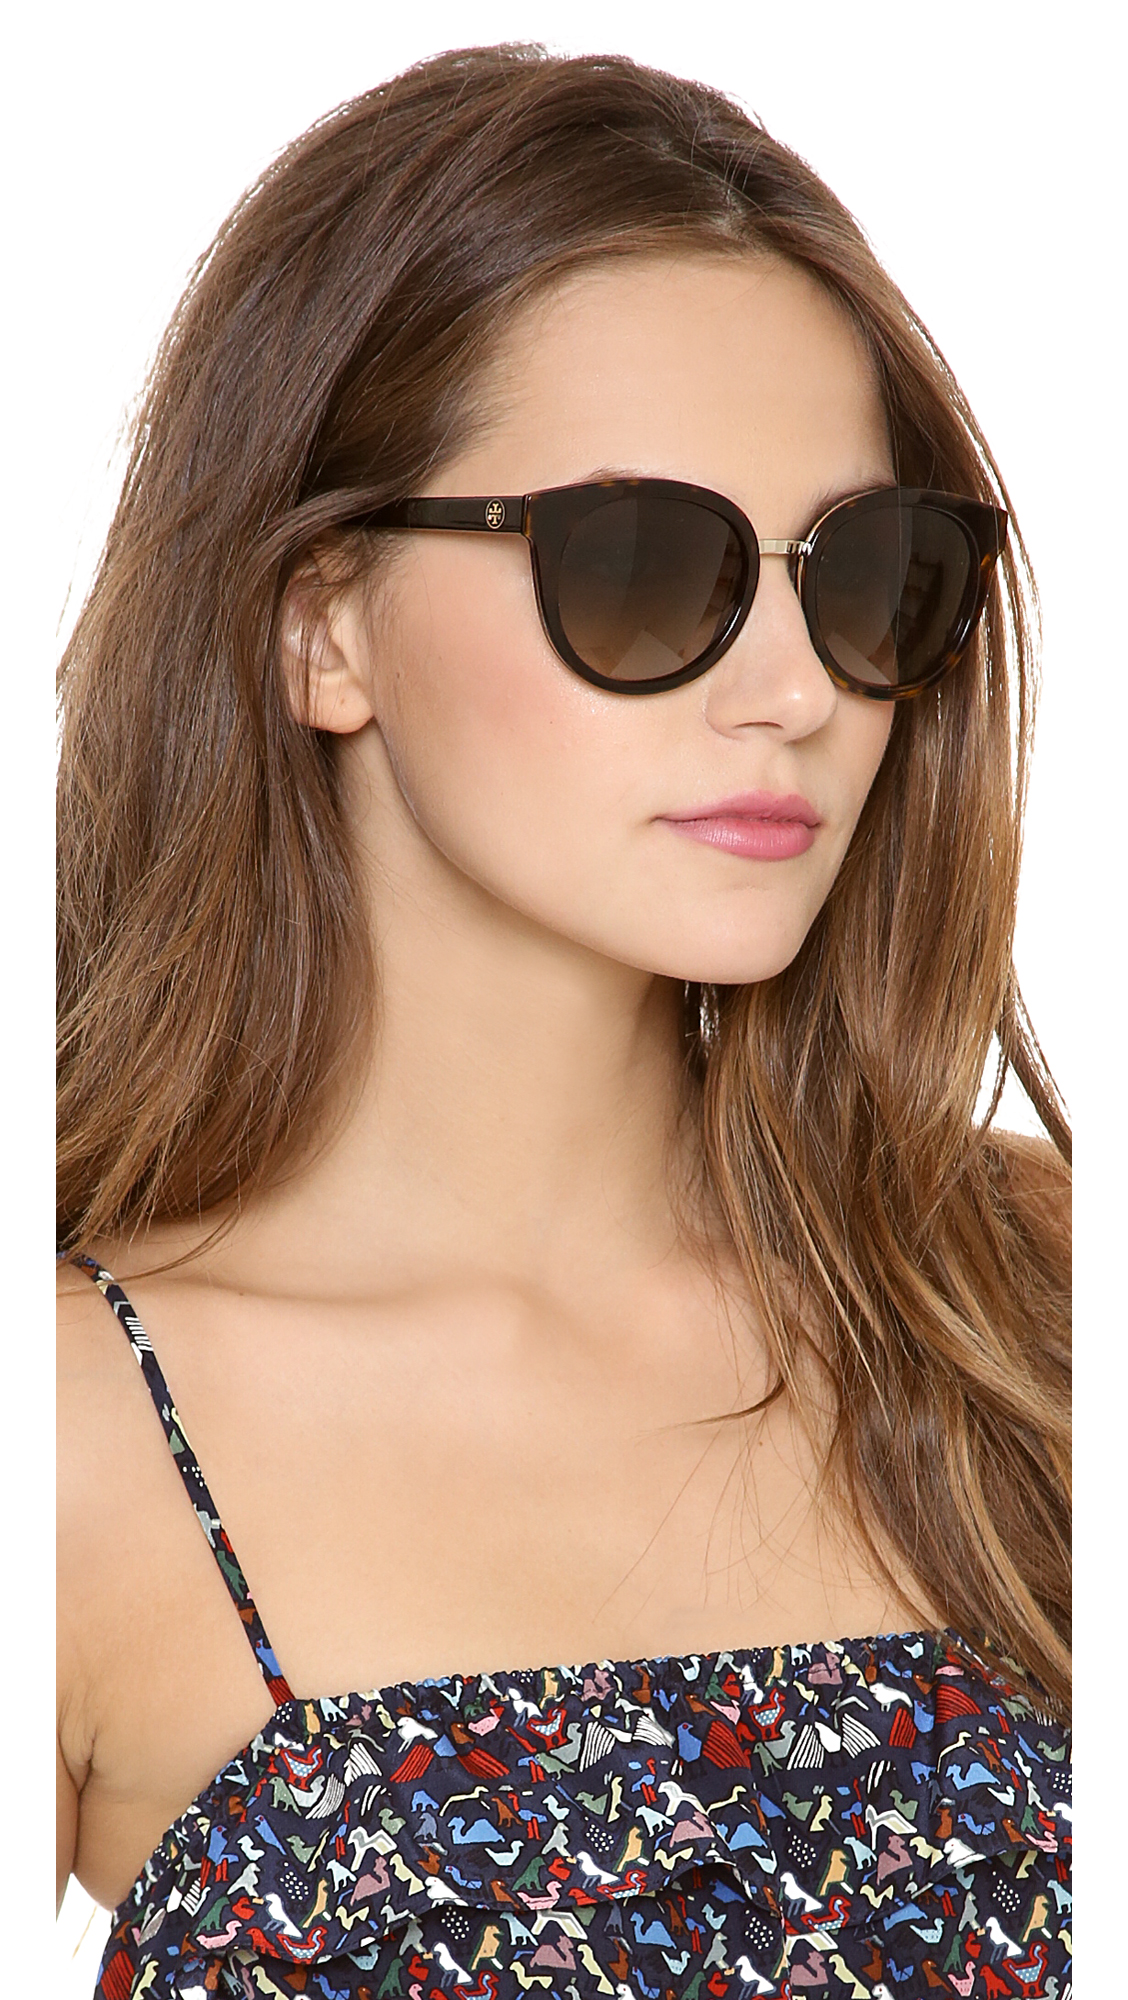 3898e3bf77 Lyst - Tory Burch Eclectic Sunglasses - Tortoise Brown Gradient in Brown